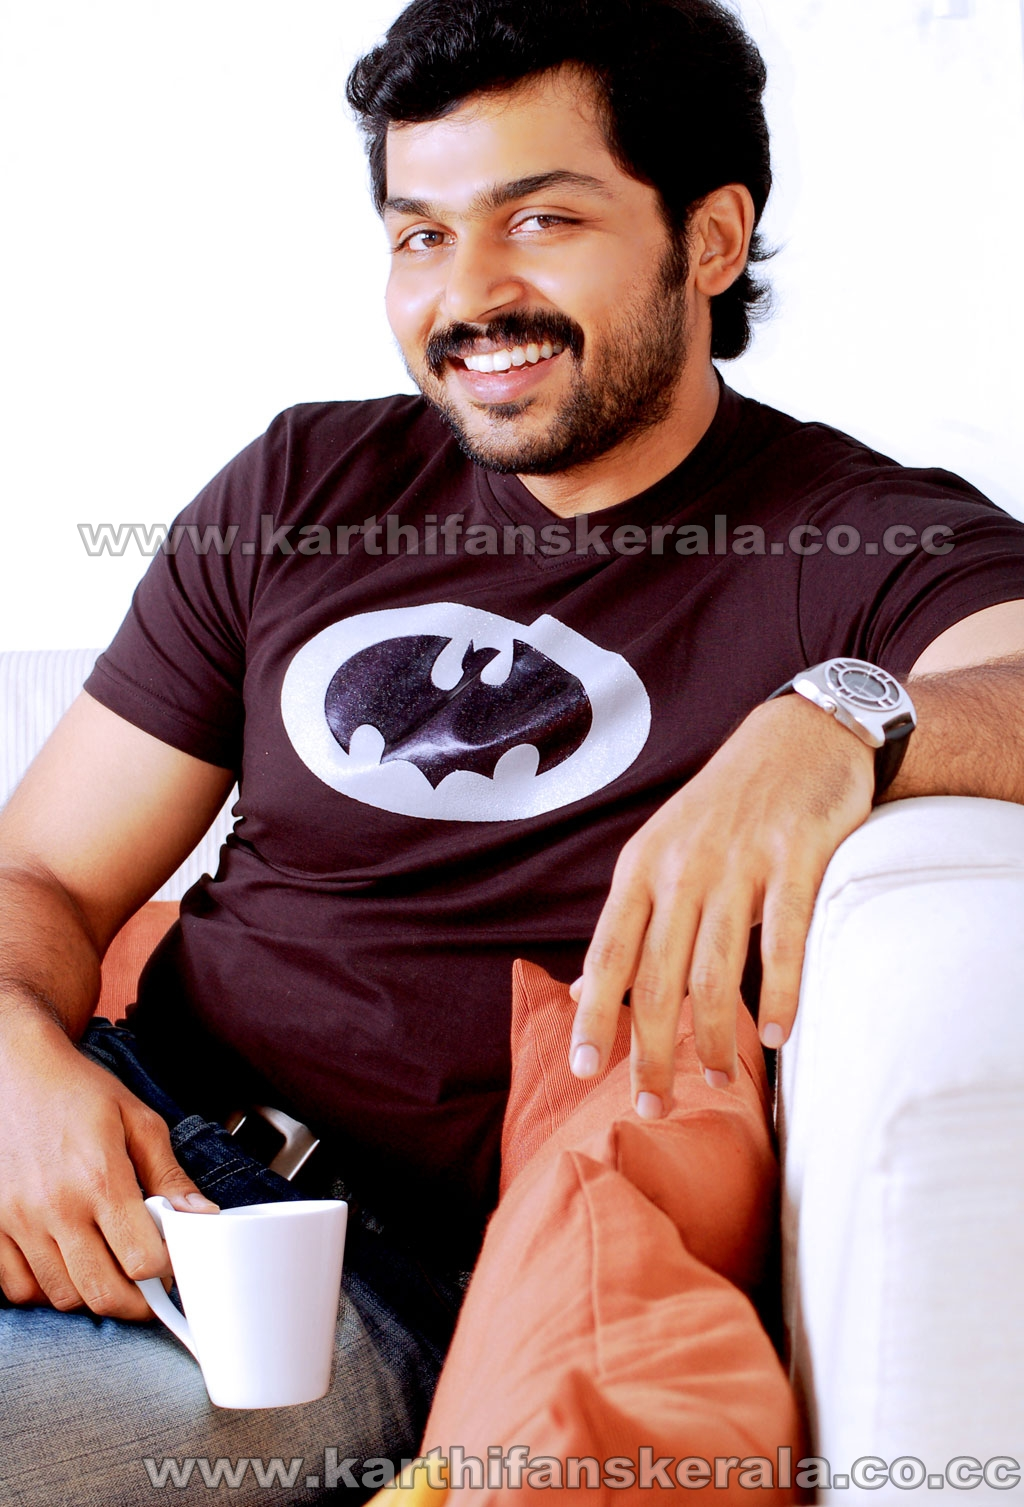 Mama Shooting Parkka Poren, 14.01.2013, Karthi Show, Sun TV Program